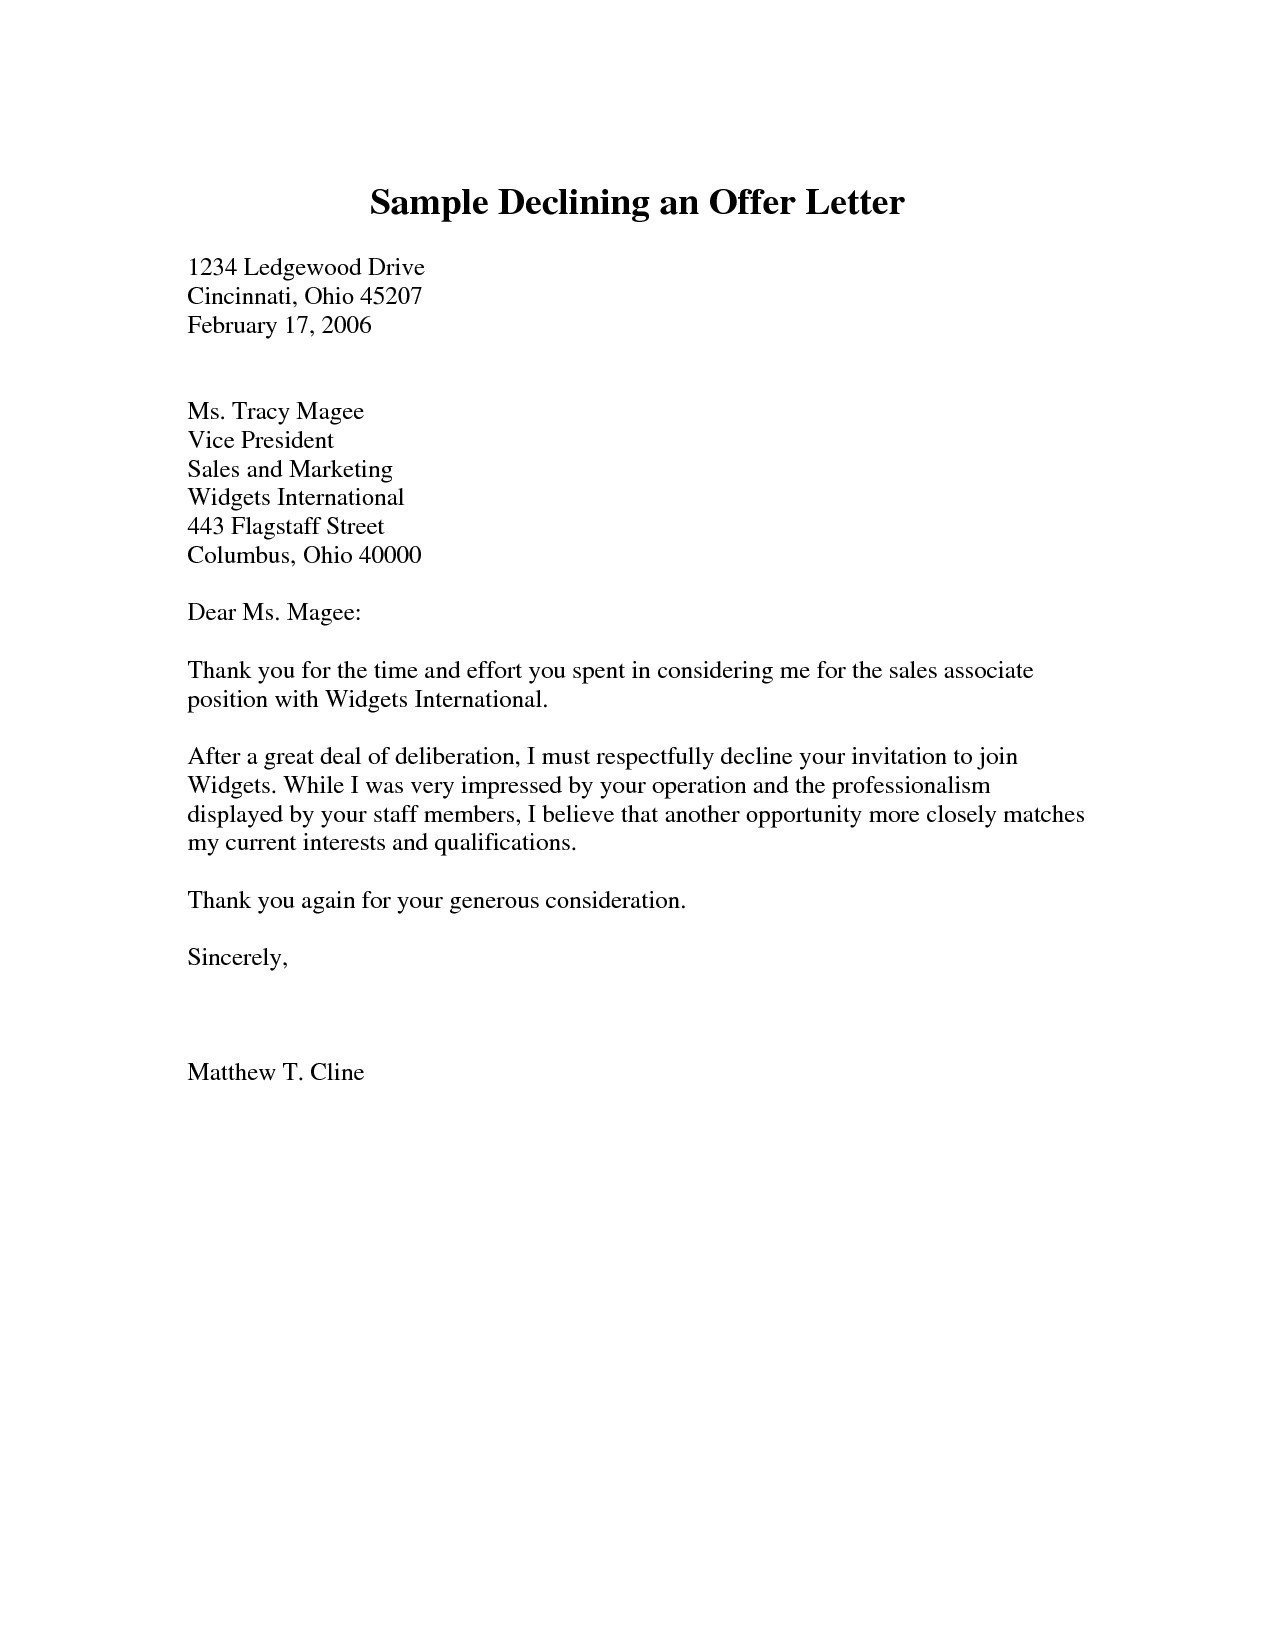 decline an offer of employment sample of rejection letter for offer howtoviews co 14081